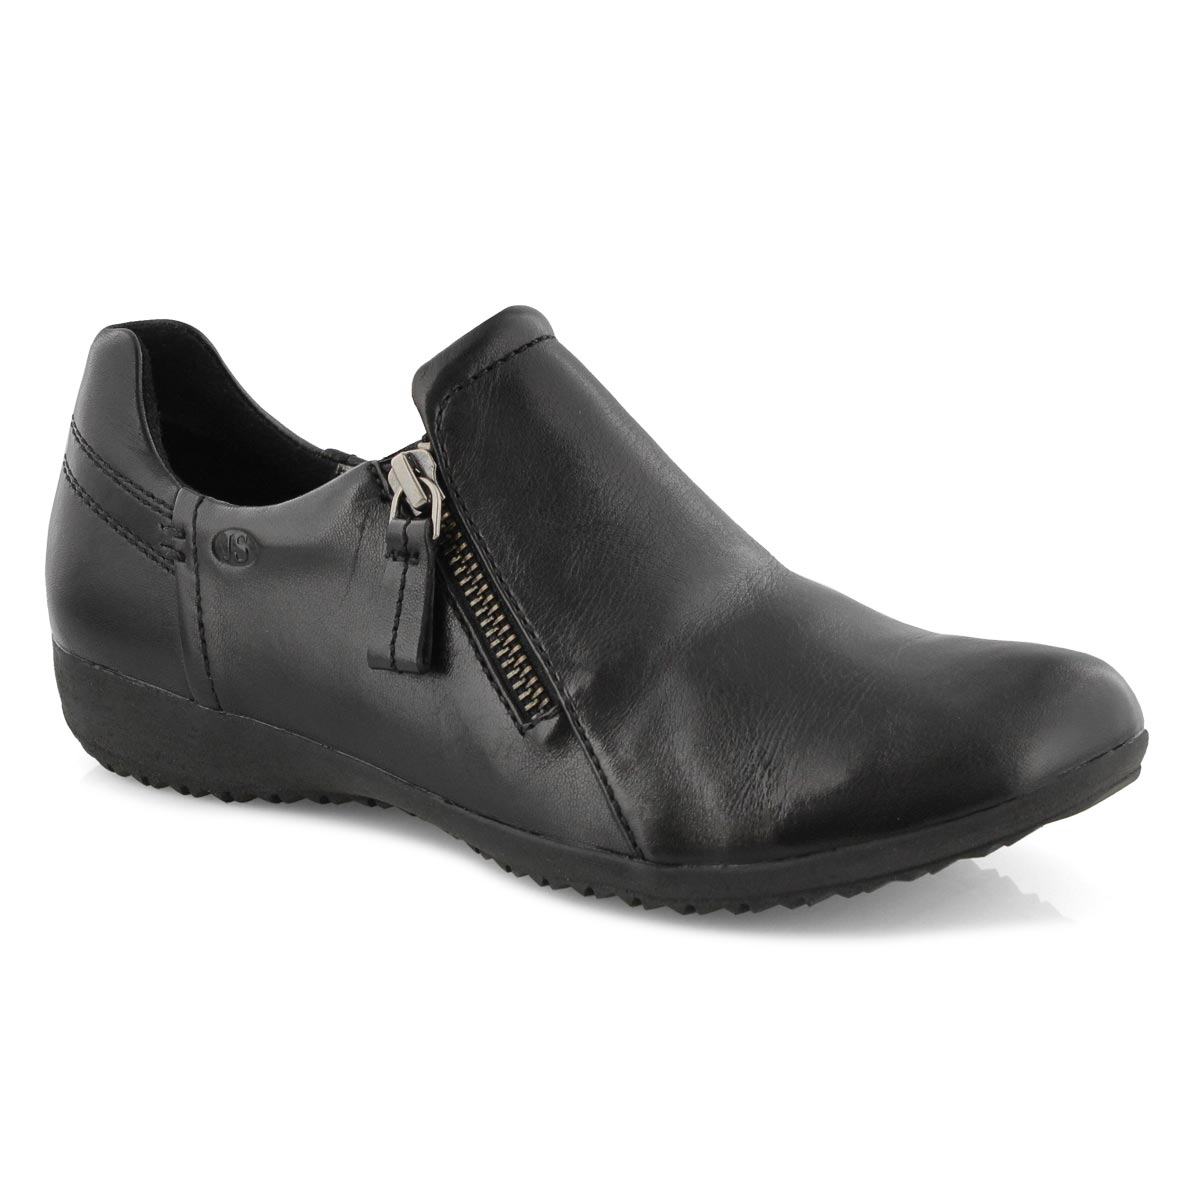 Lds Naly 32 black casual slip on Loafers